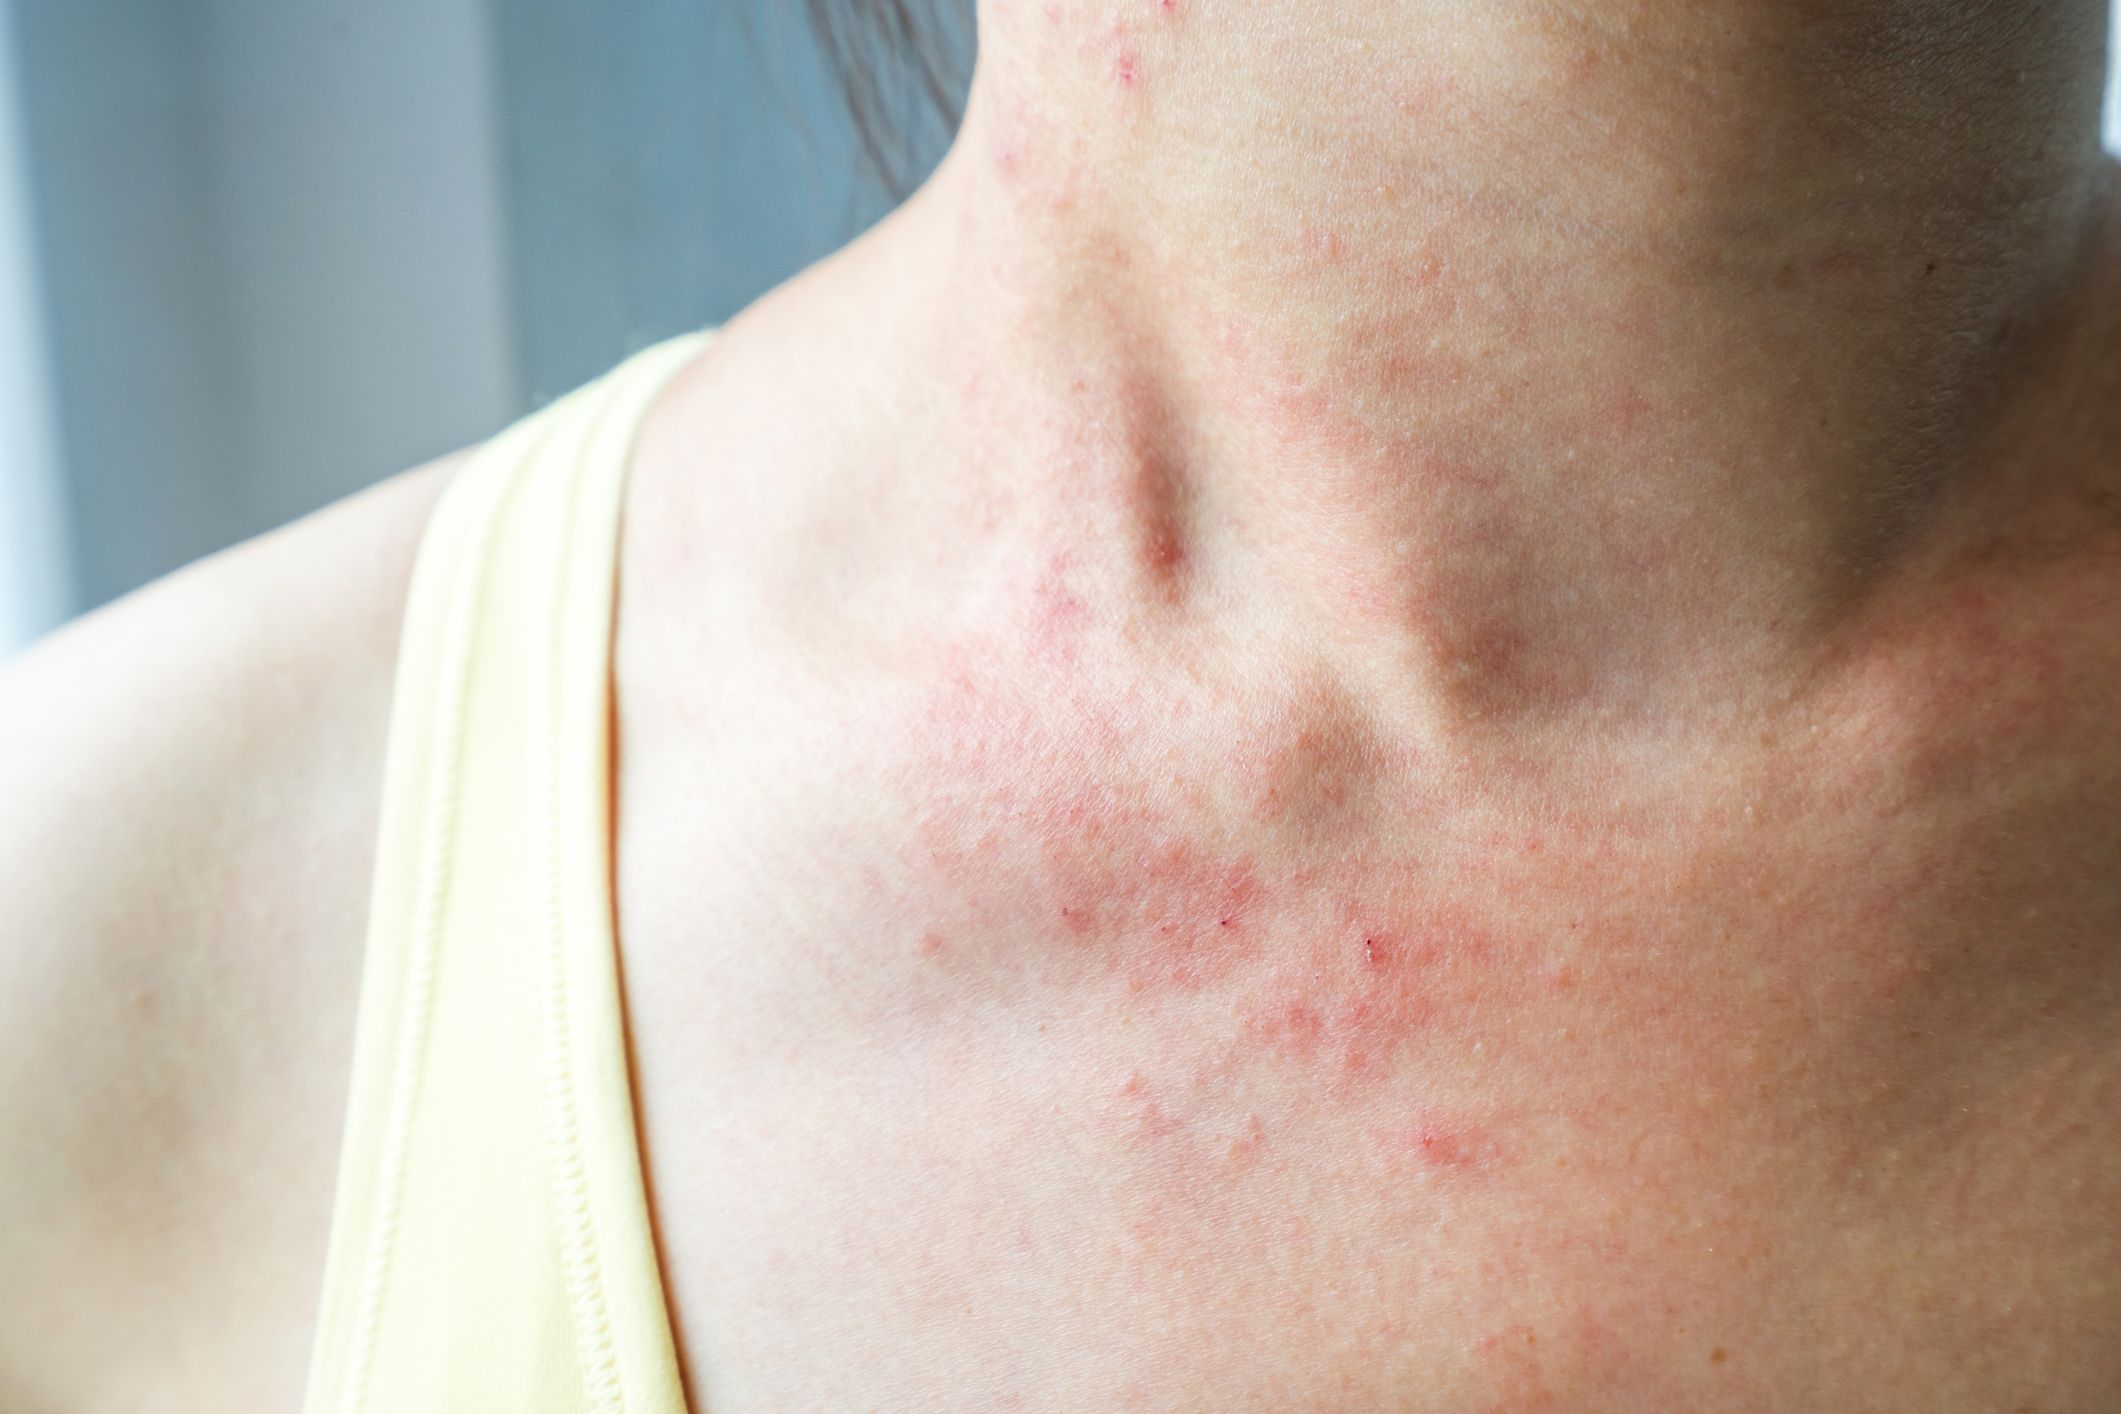 Cortisone Creams Are Powerful Skin Healers For Bites and Rashes